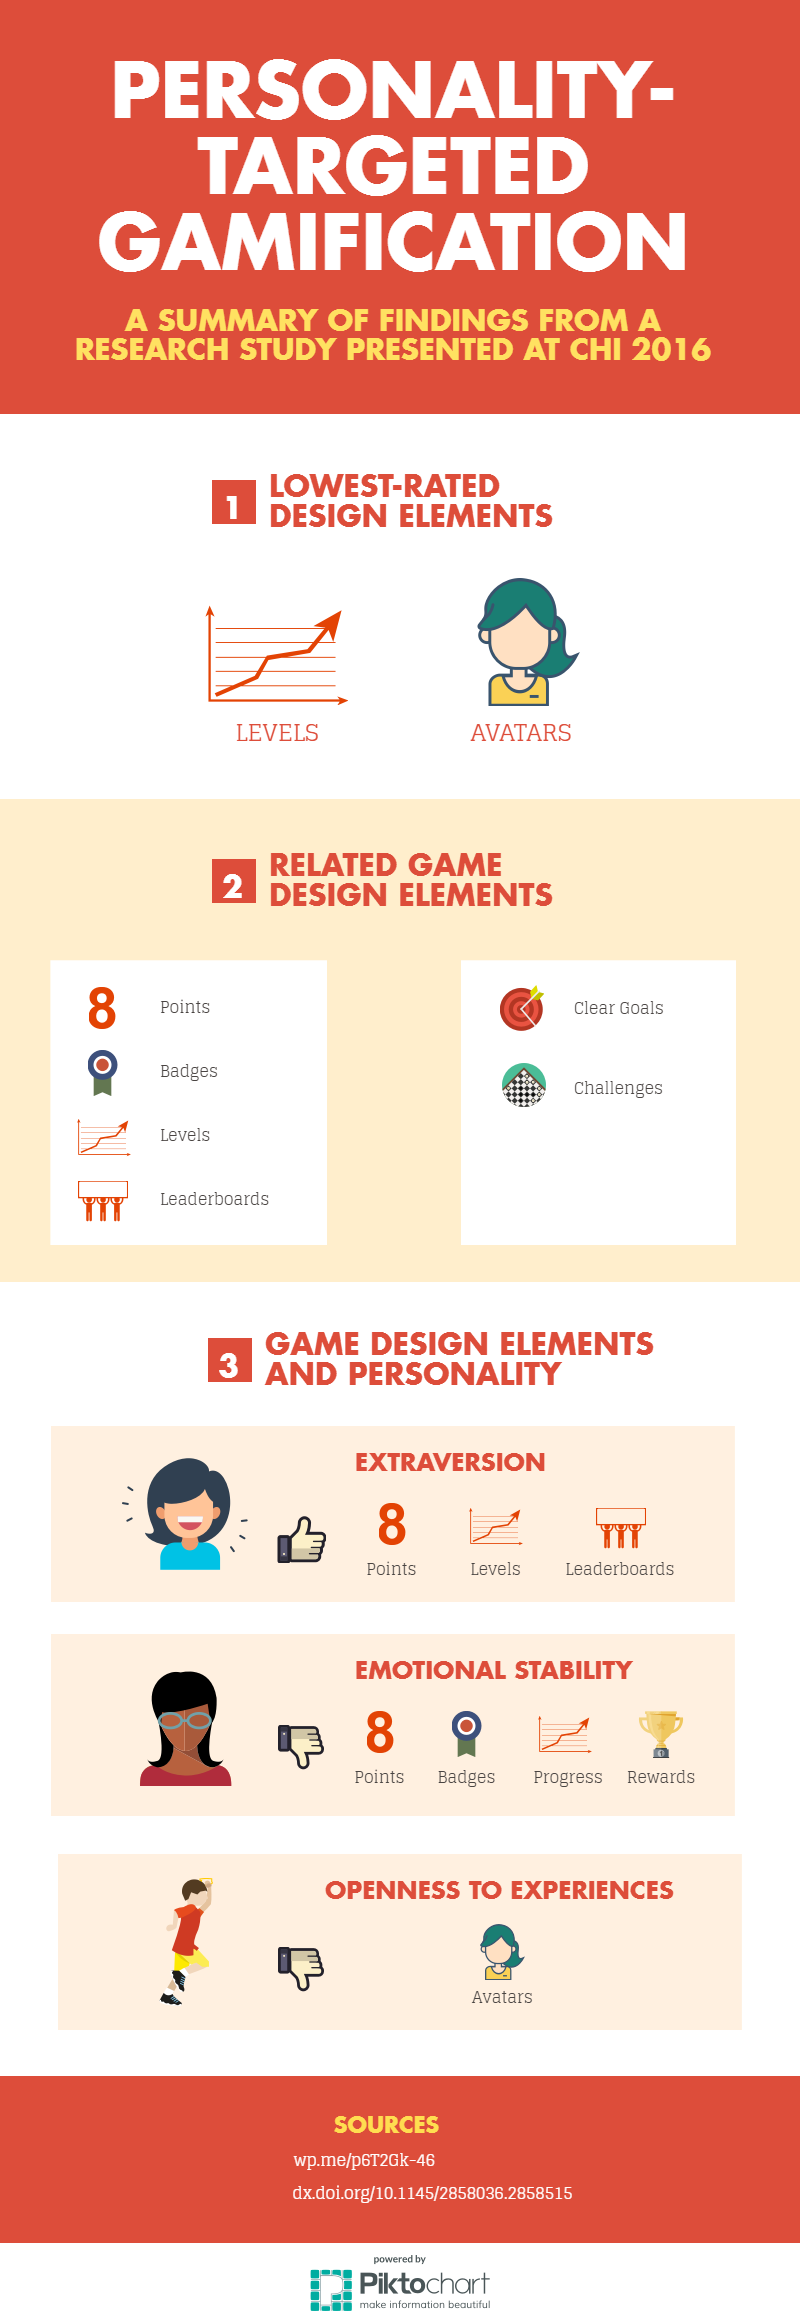 Personality-targeted Gamification